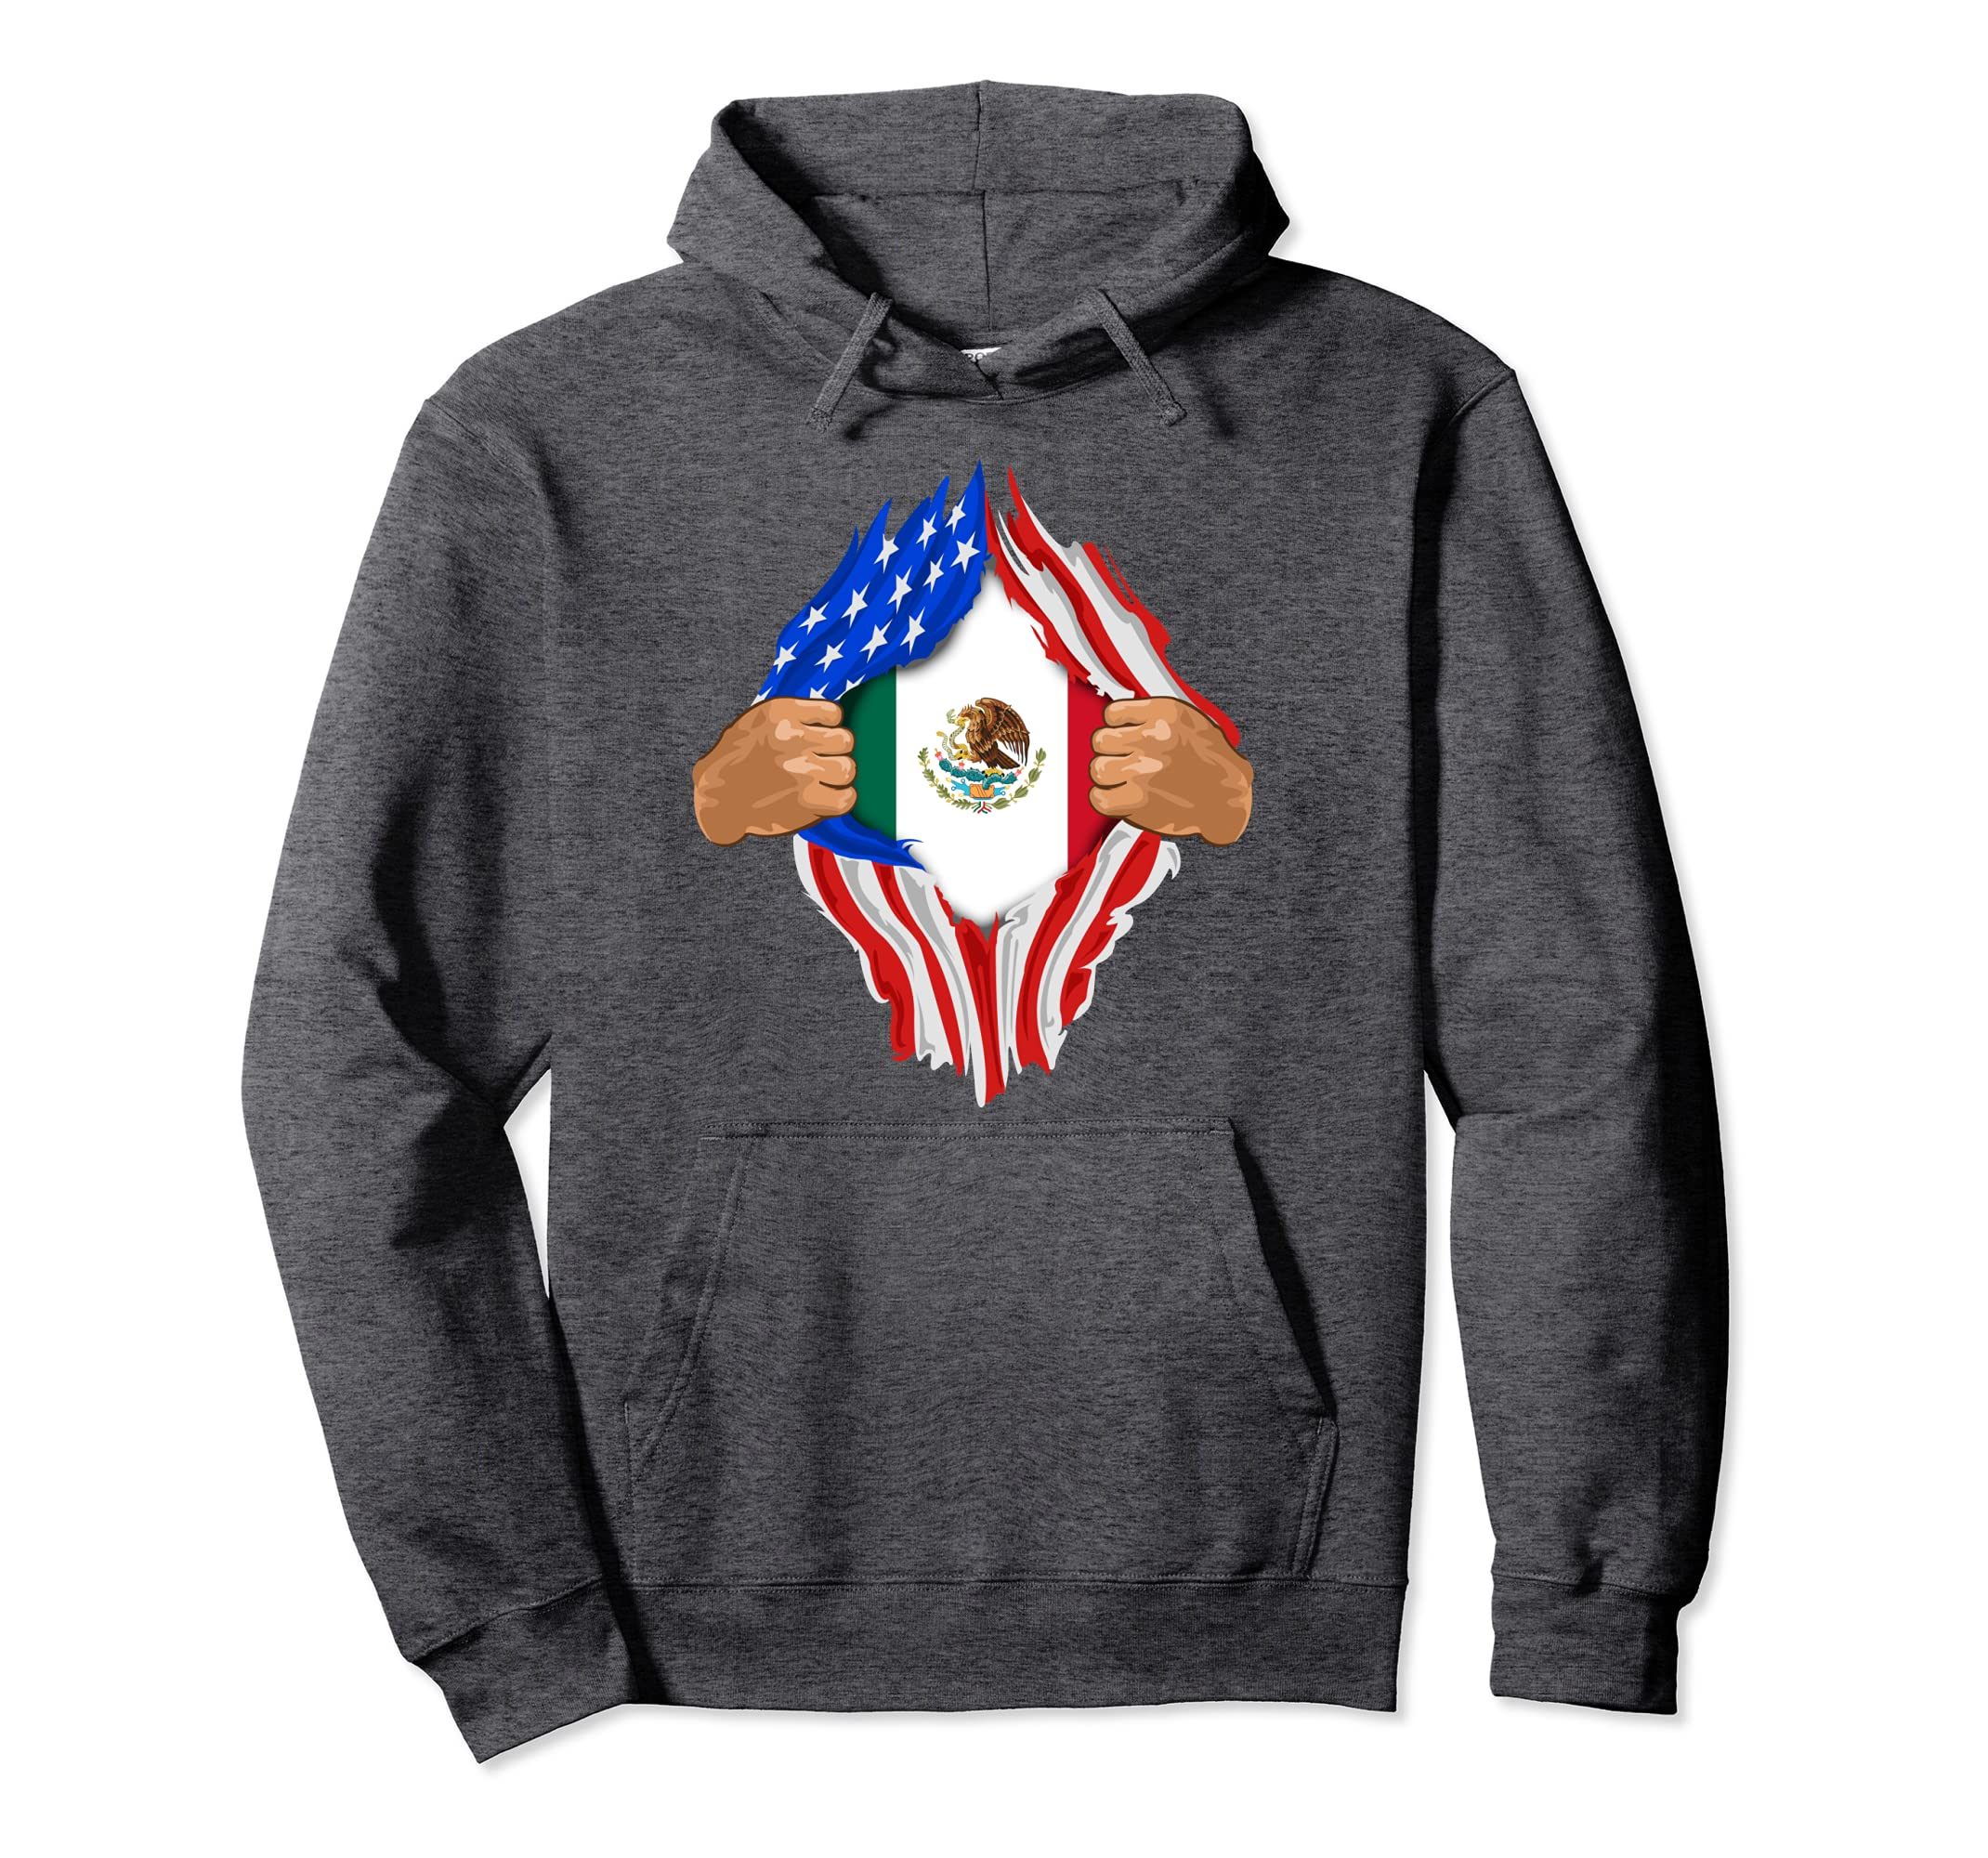 buy popular 4615a ab84a Amazon.com: Mexican Blood Inside Me Hoodie | Mexico Flag ...